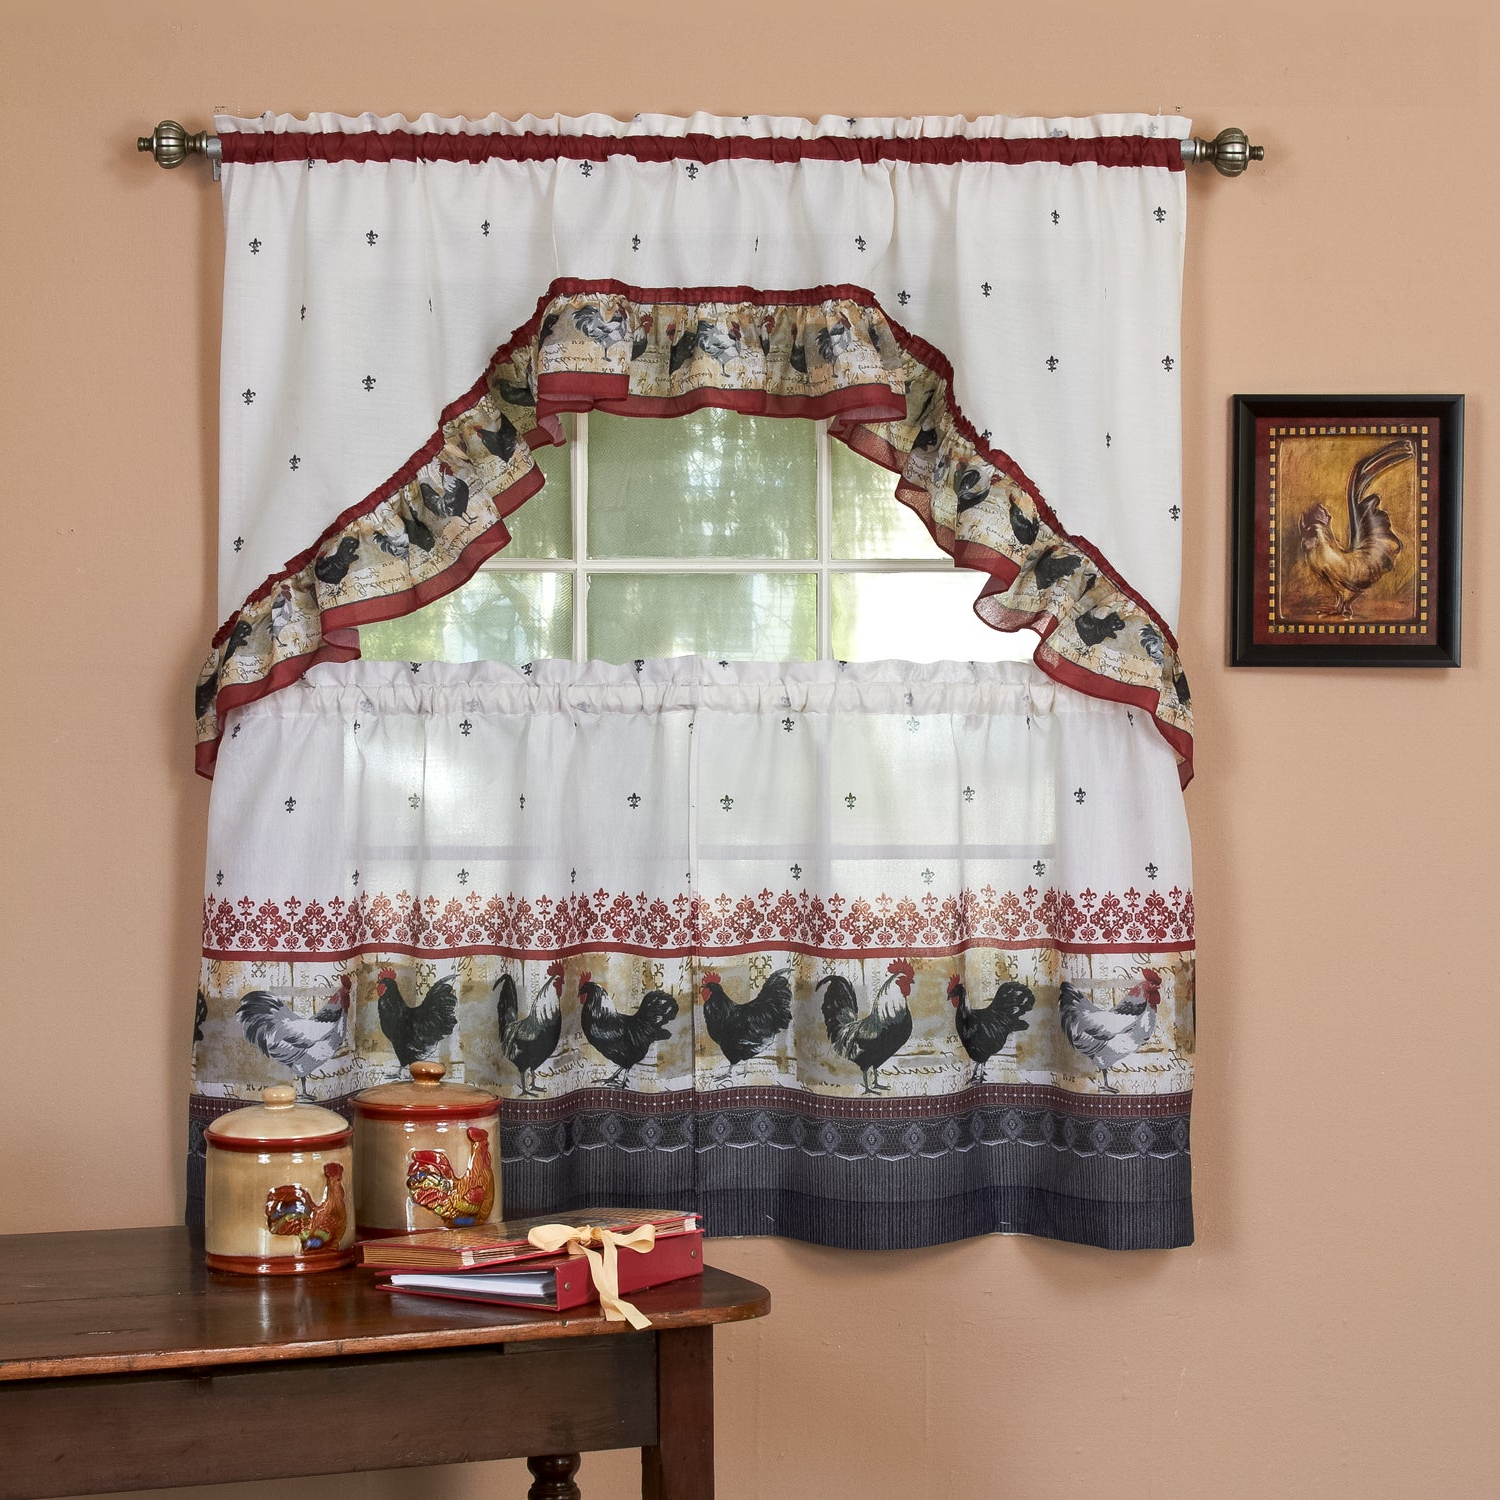 Most Popular Traditional Two Piece Tailored Tier And Swag Window Curtains Set With Ornate Rooster Print – 36 Inch With Regard To Window Curtains Sets With Colorful Marketplace Vegetable And Sunflower Print (View 19 of 20)